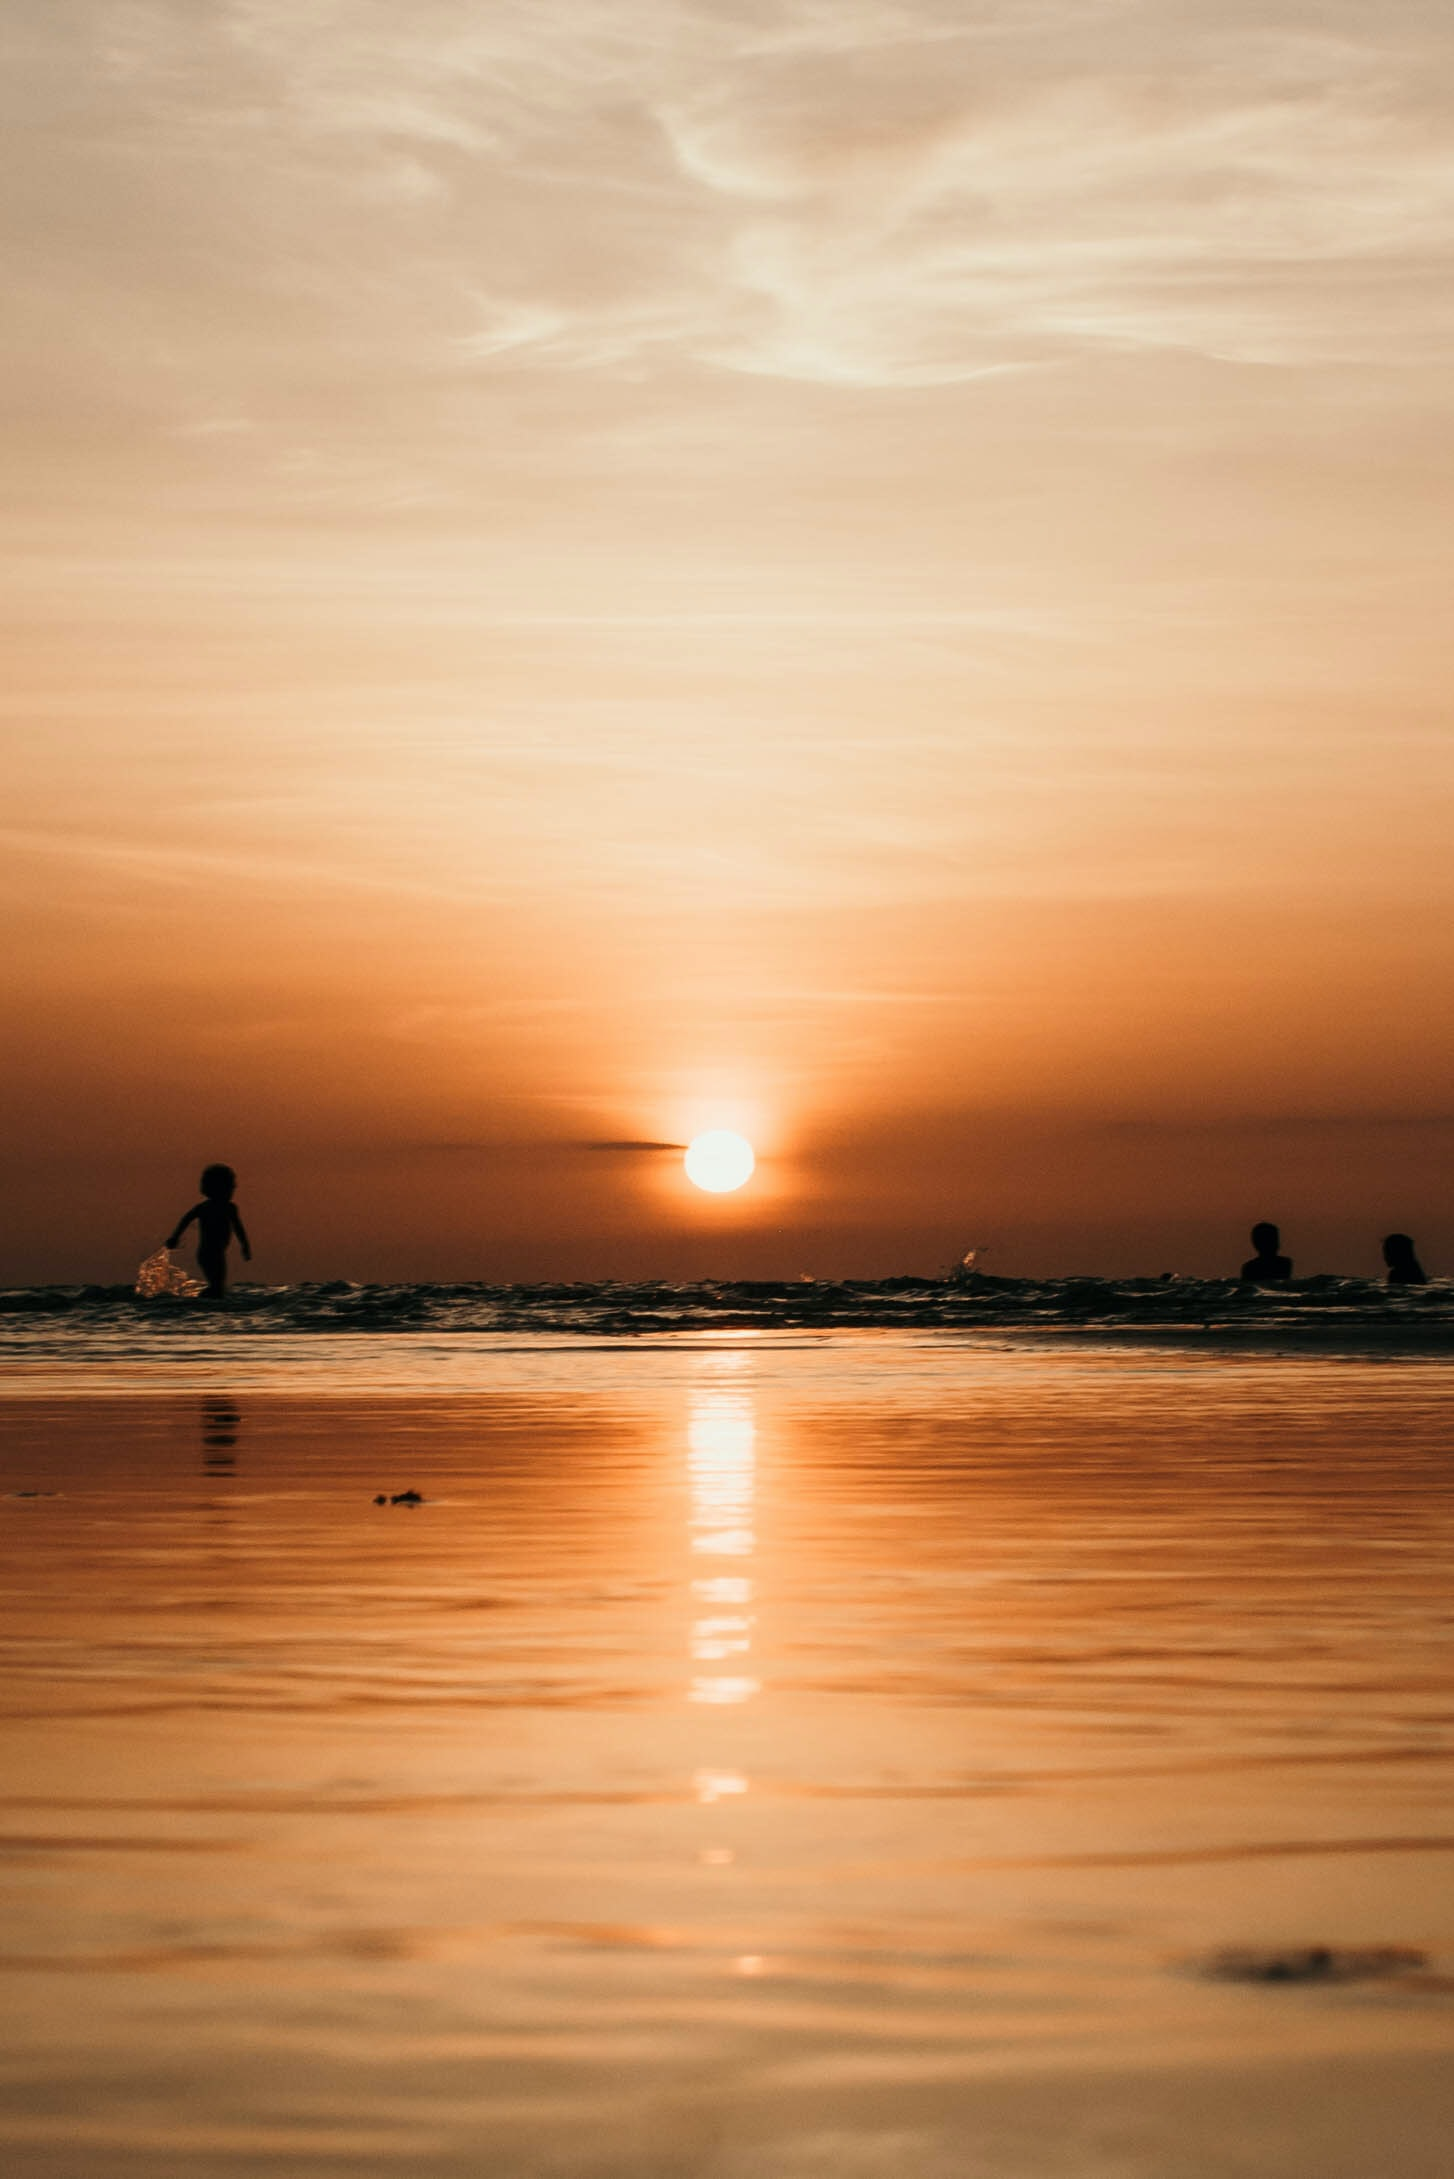 silhouette photography of two person on body of water during sunset